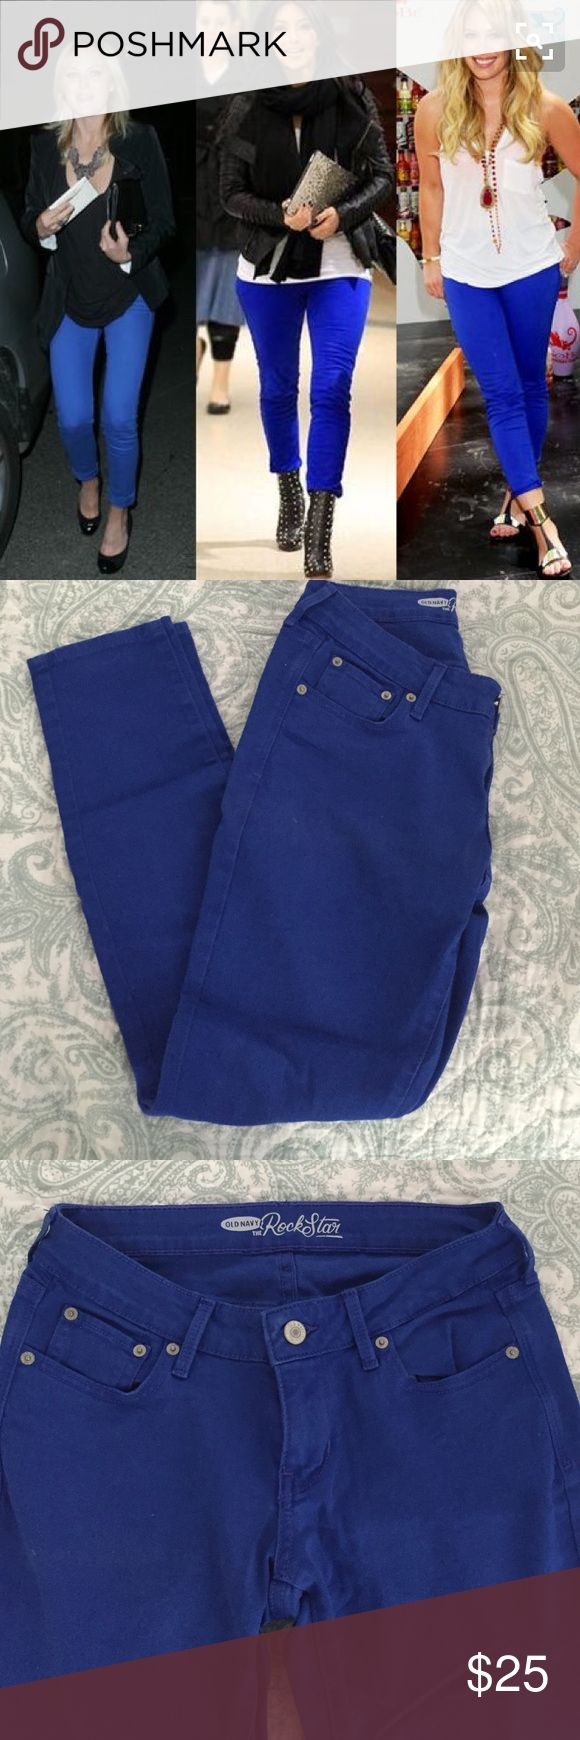 Royal Blue Jeans- Size 2 Only worn once and super flattering! Listing under ASOS for exposure ASOS Jeans Skinny